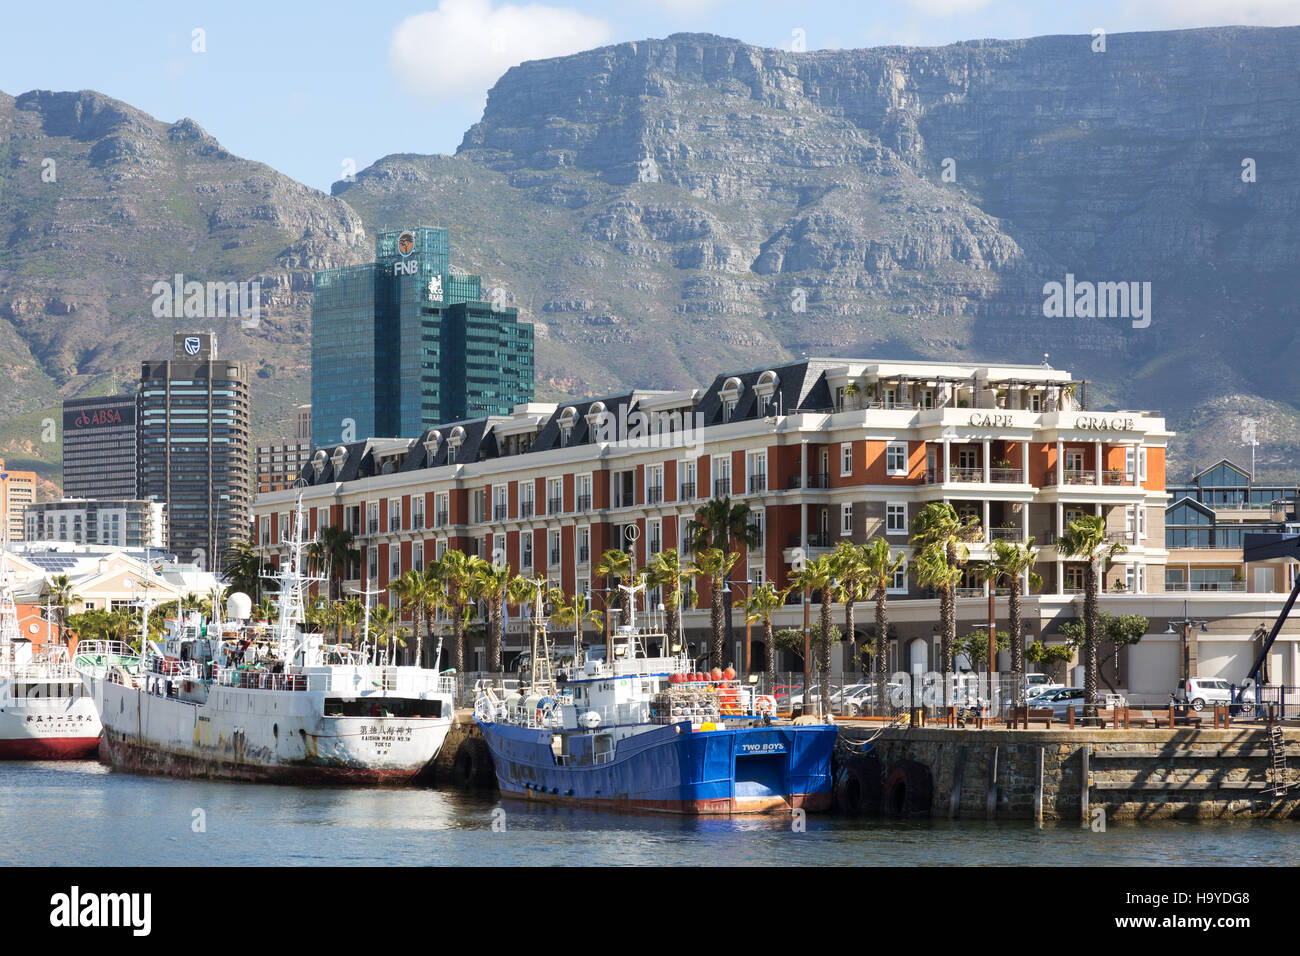 The luxury Cape Grace Hotel and Table Mountain, the Waterfront, Cape Town South Africa - Stock Image